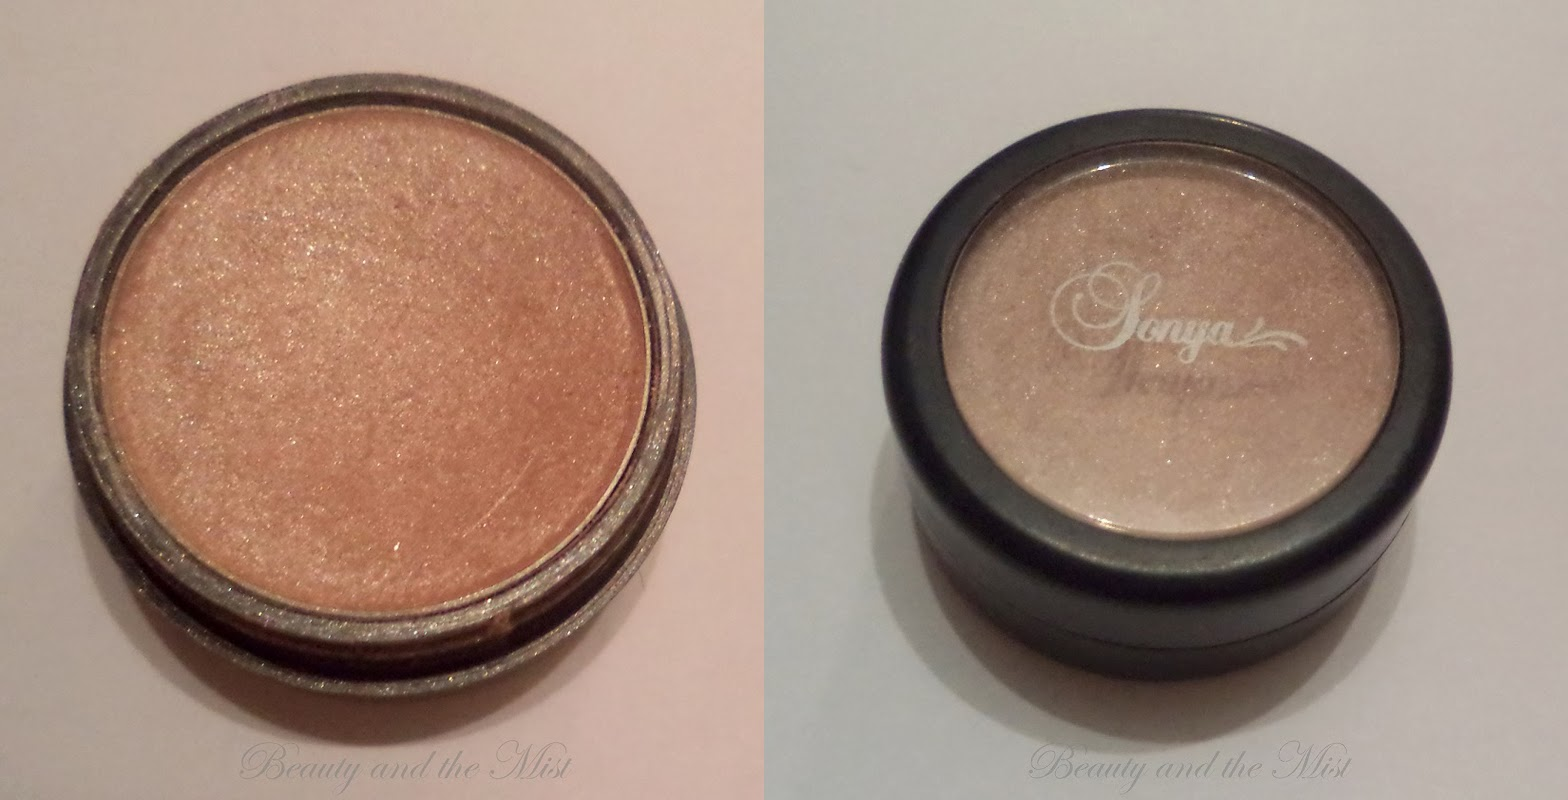 Sonya #149 Moonlight natural eyeshadow